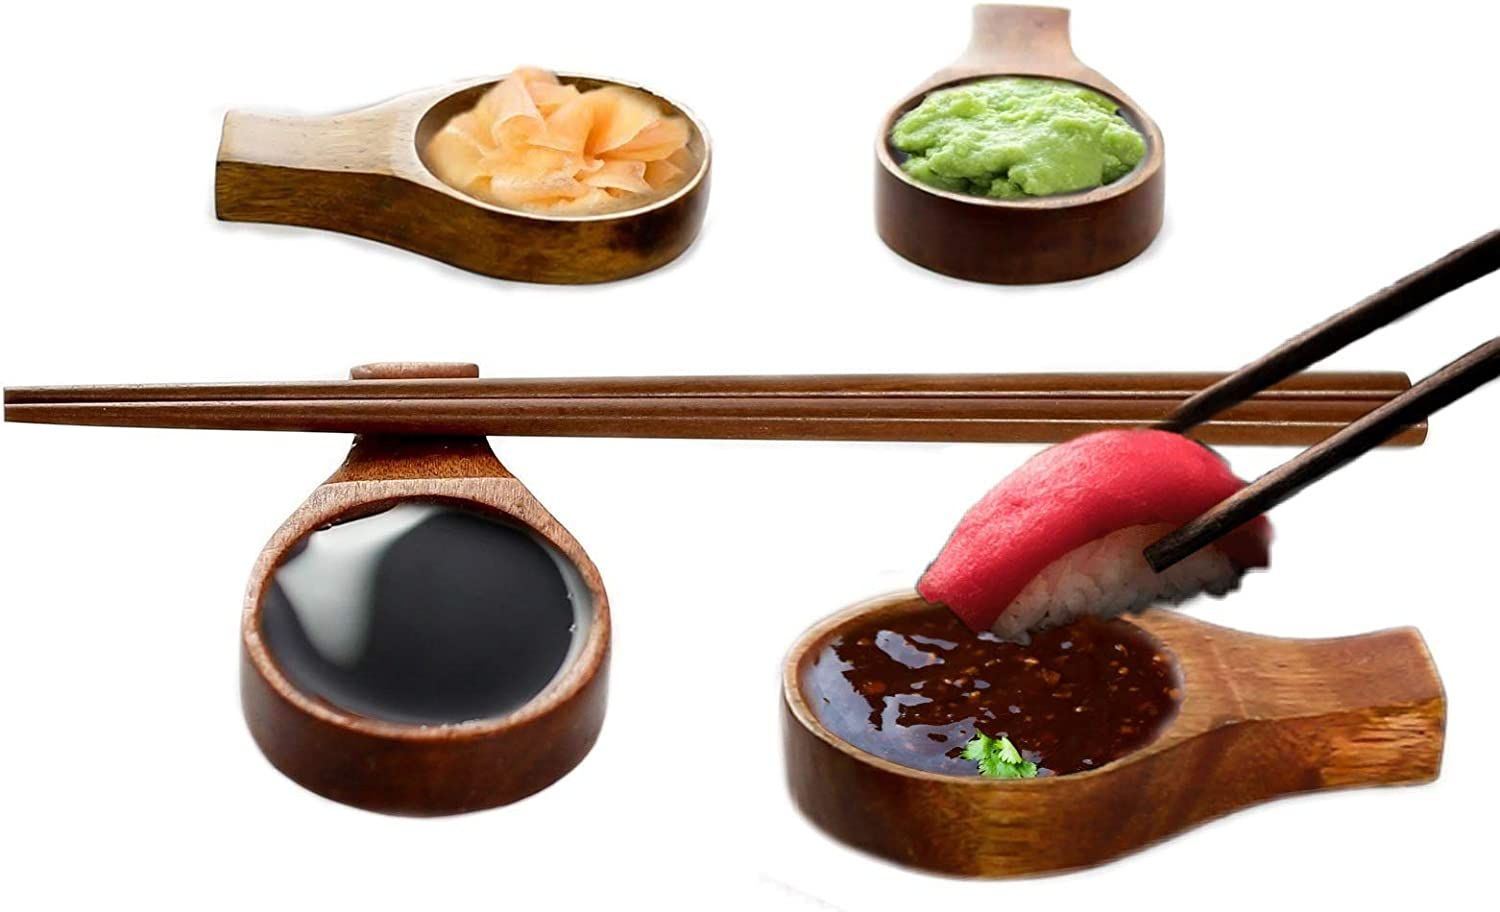 8 Pieces Wooden Chopstick Rest Set: 4 Wood Sauce Dish & Chopstciks Stand And Four Wood Chopsticks. Perfect For Asian Food: Ramen, Currys, Sushi, Miso, Dipping plates.